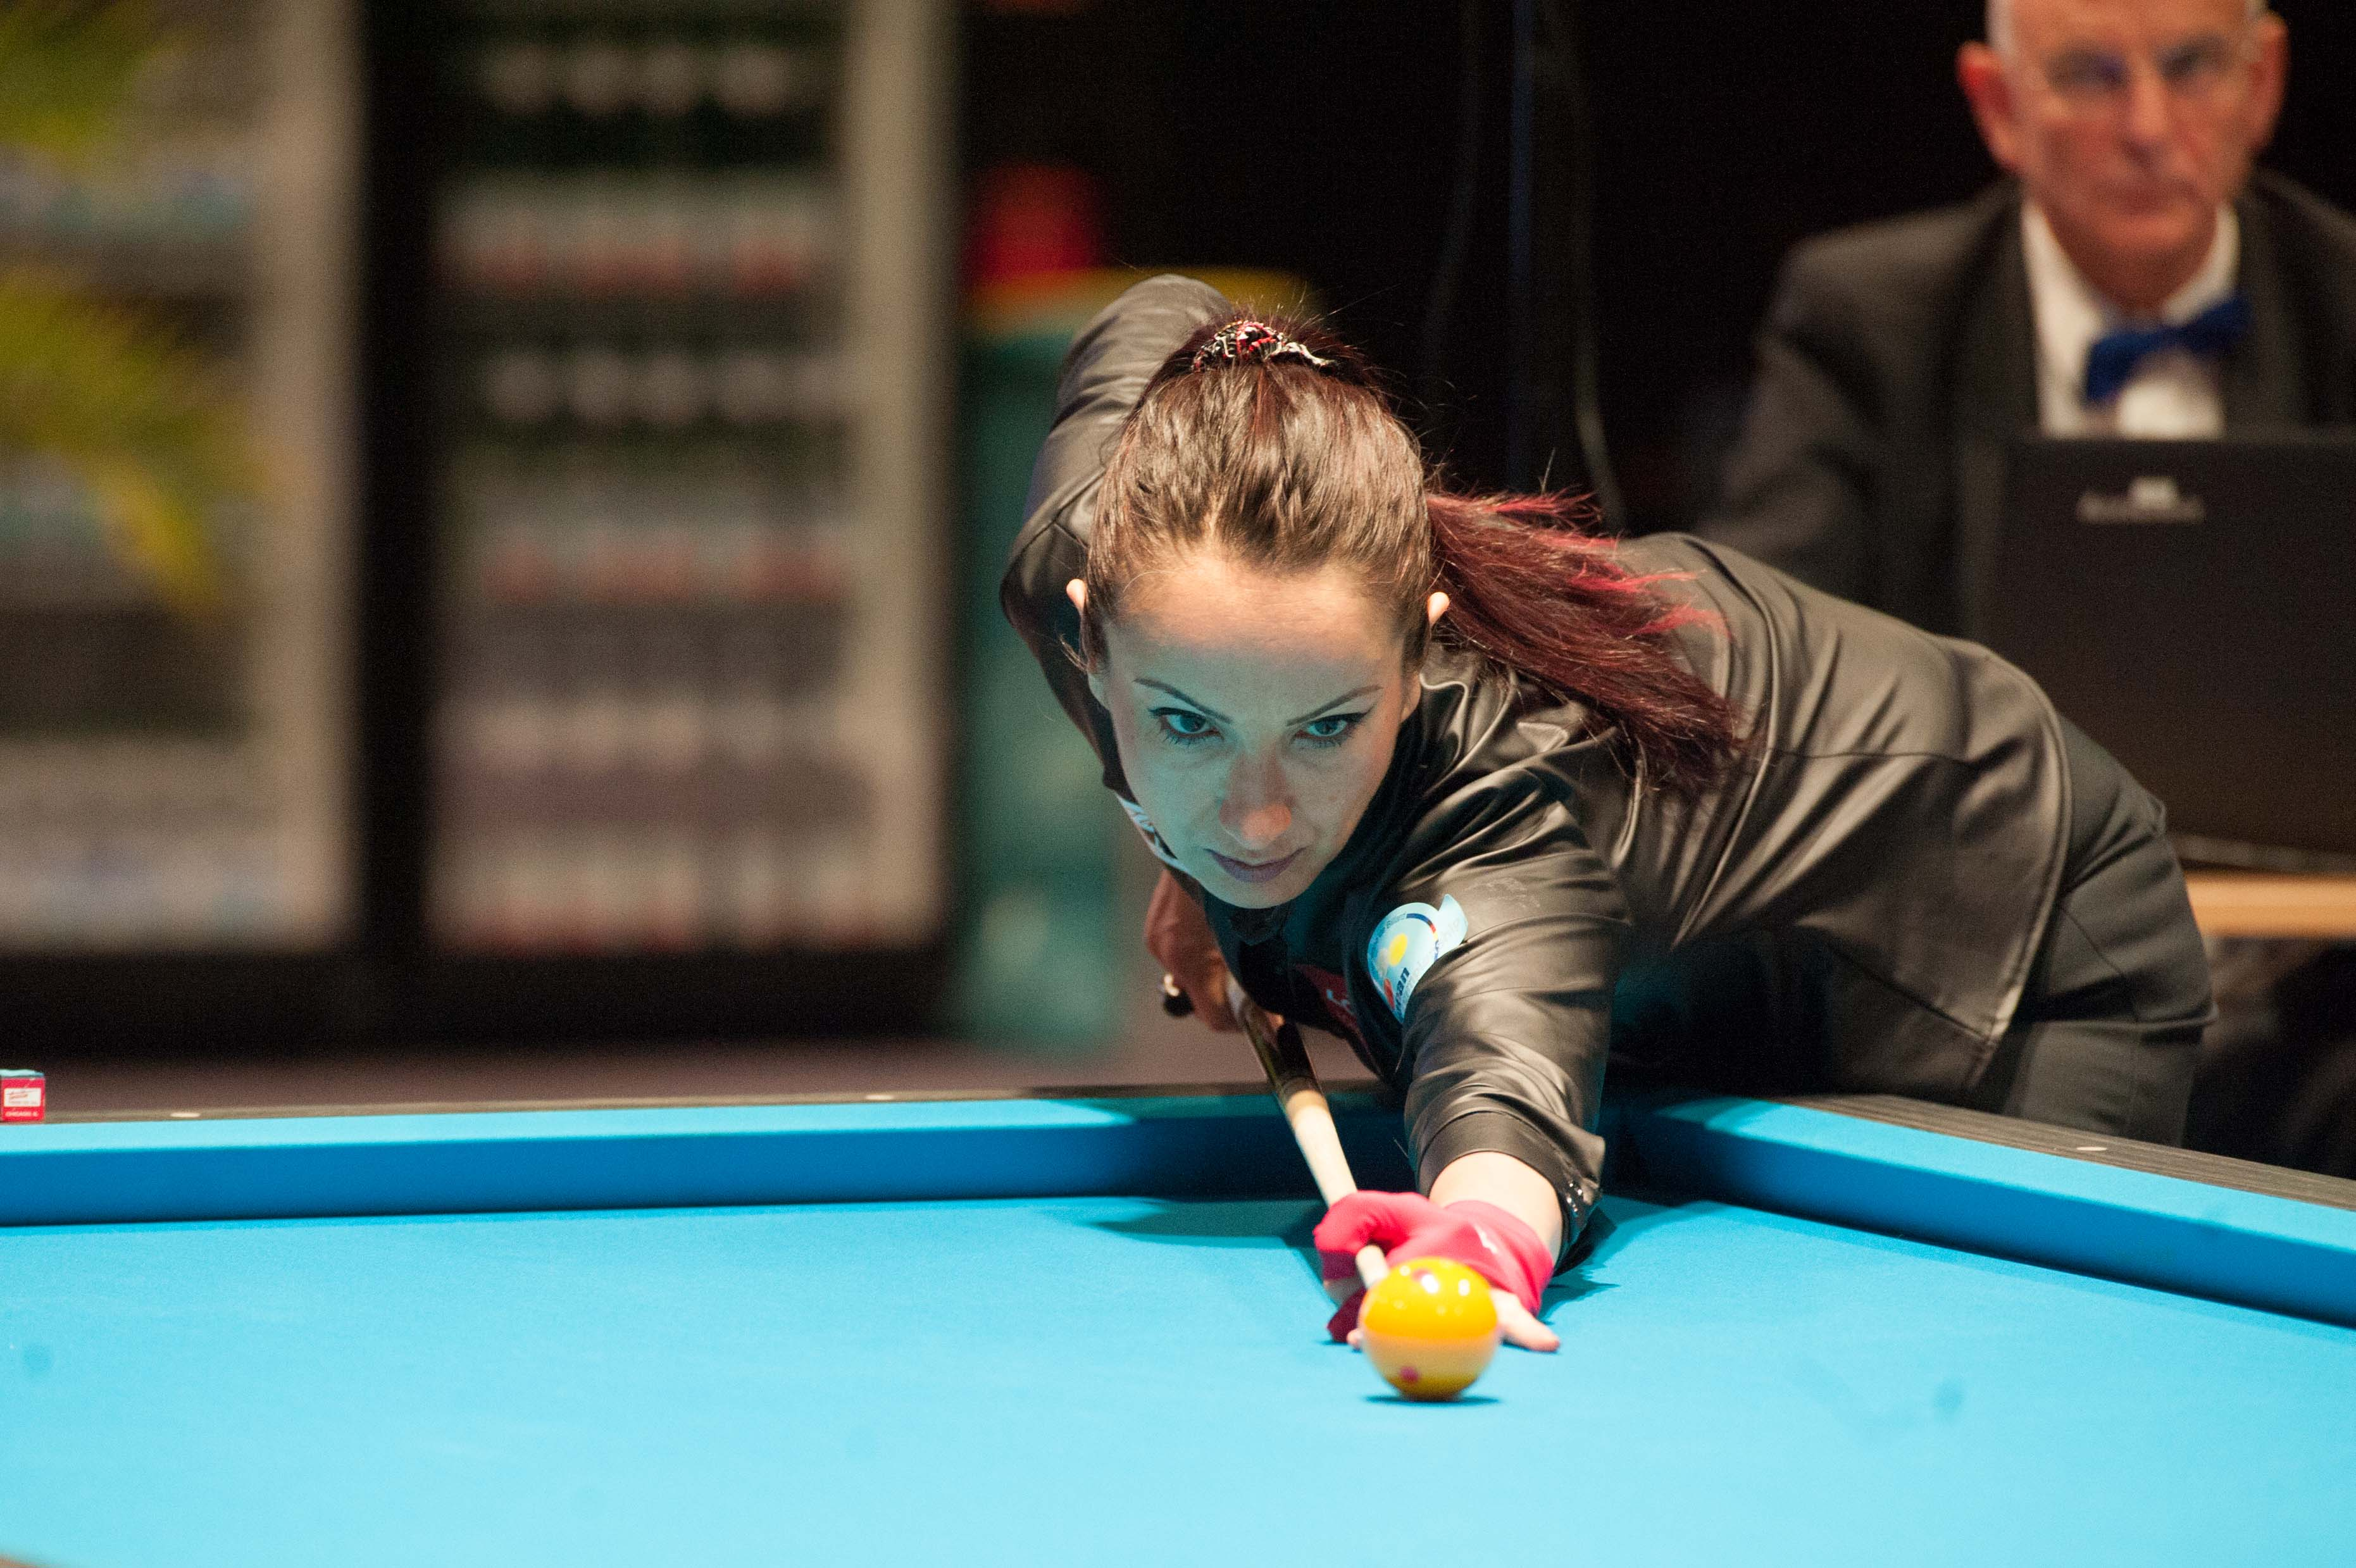 European Billiards Championships is underway